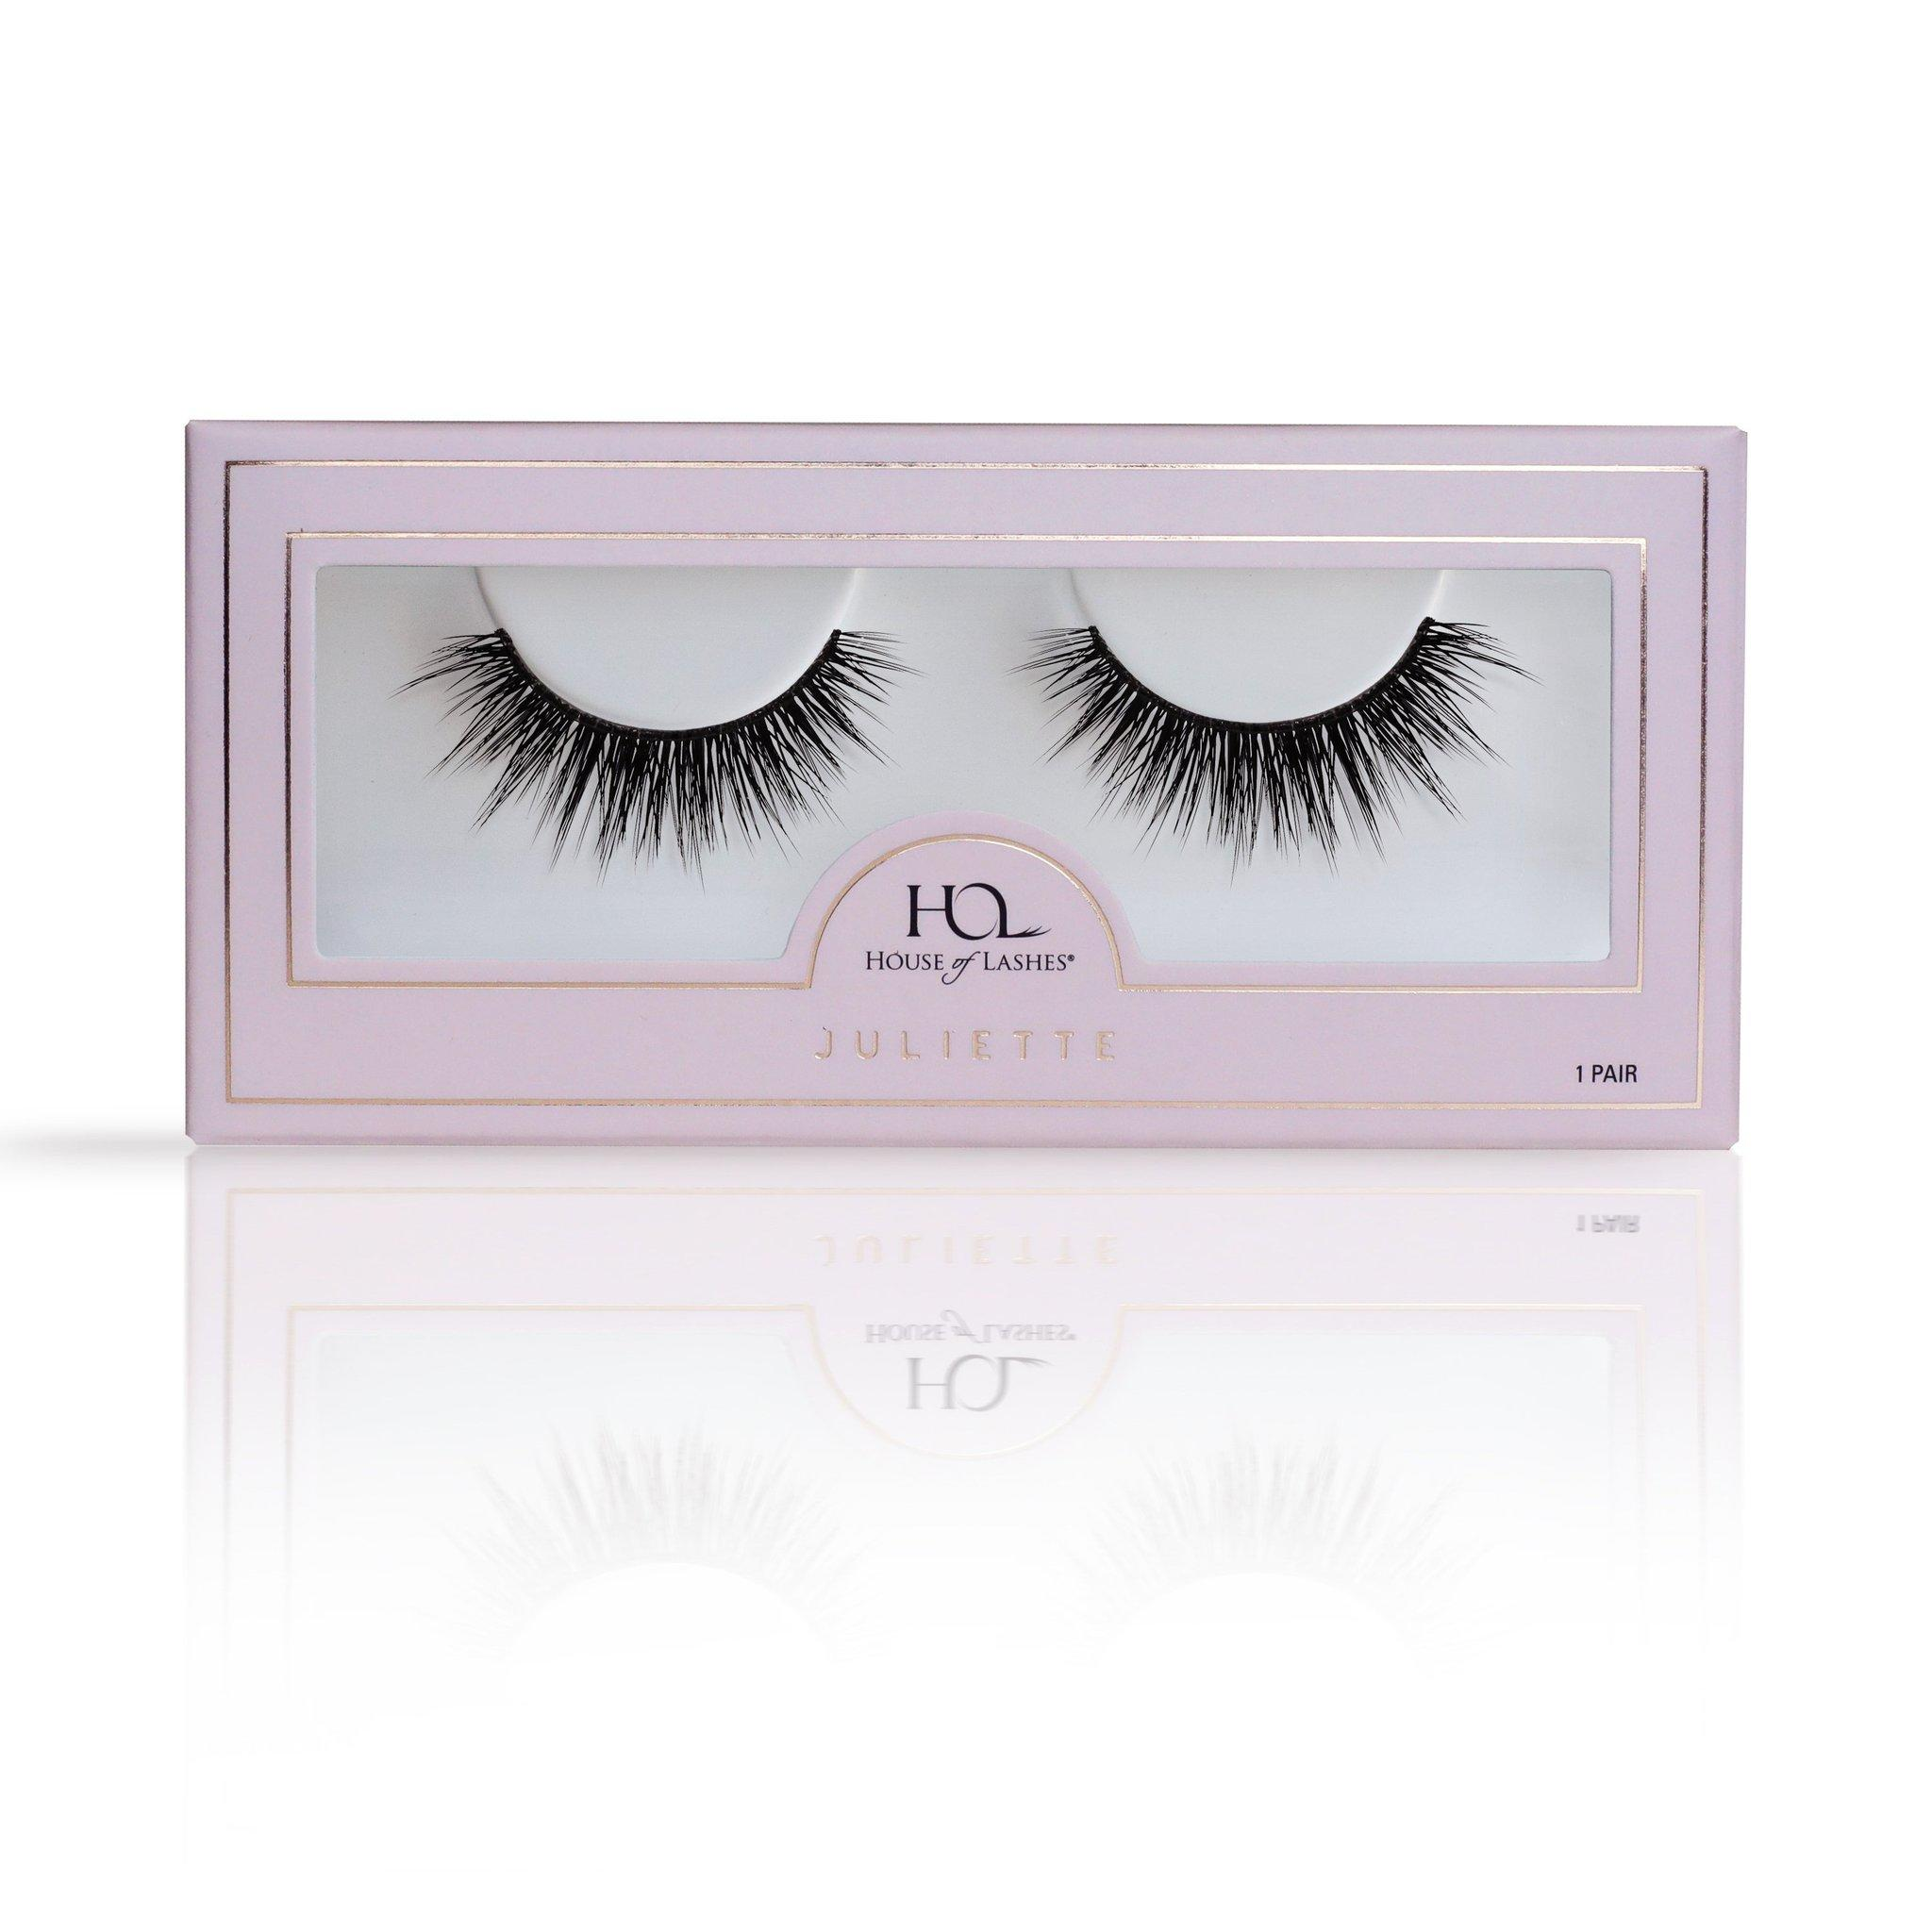 House Of Lashes Juliette